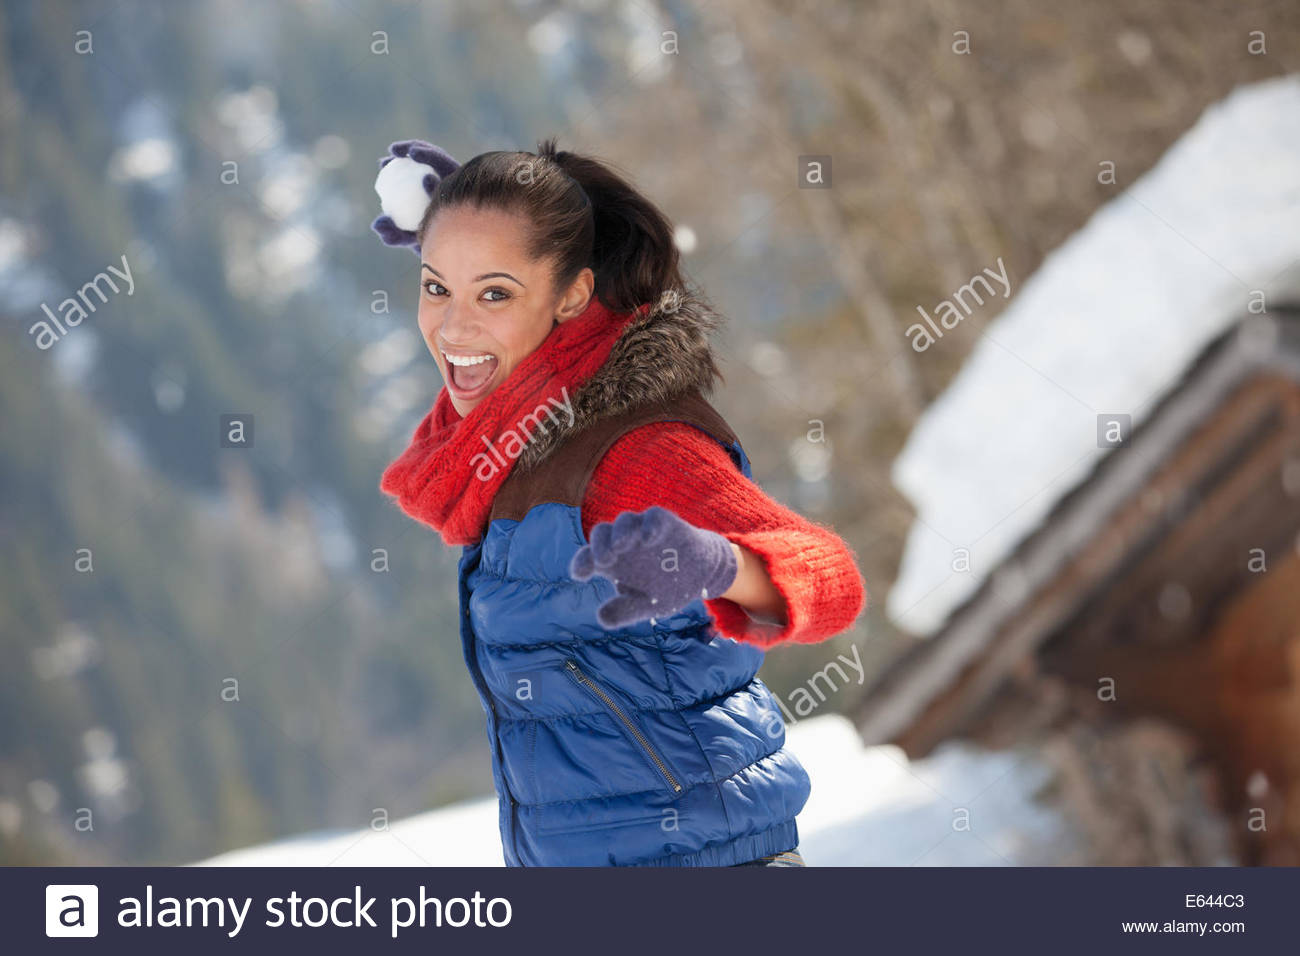 Portrait of smiling woman throwing snowball - Stock Image